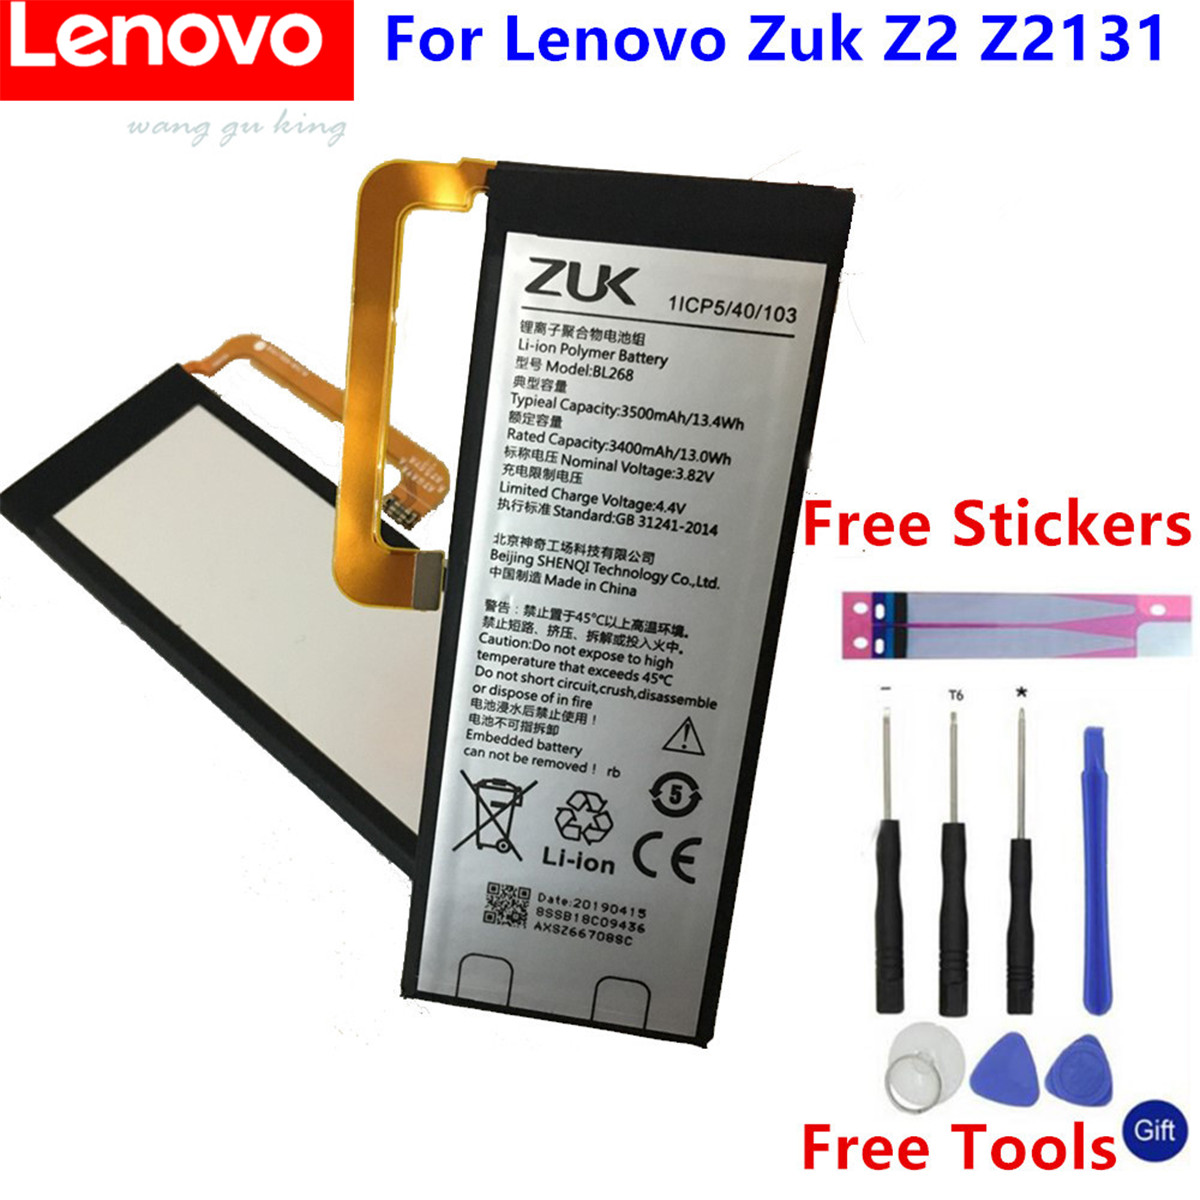 New Original Battery BL268 For Lenovo ZUK Z2 3500mAh Mobile Phone replacement High Quality Battery + tools Gifts +Free Stickers image